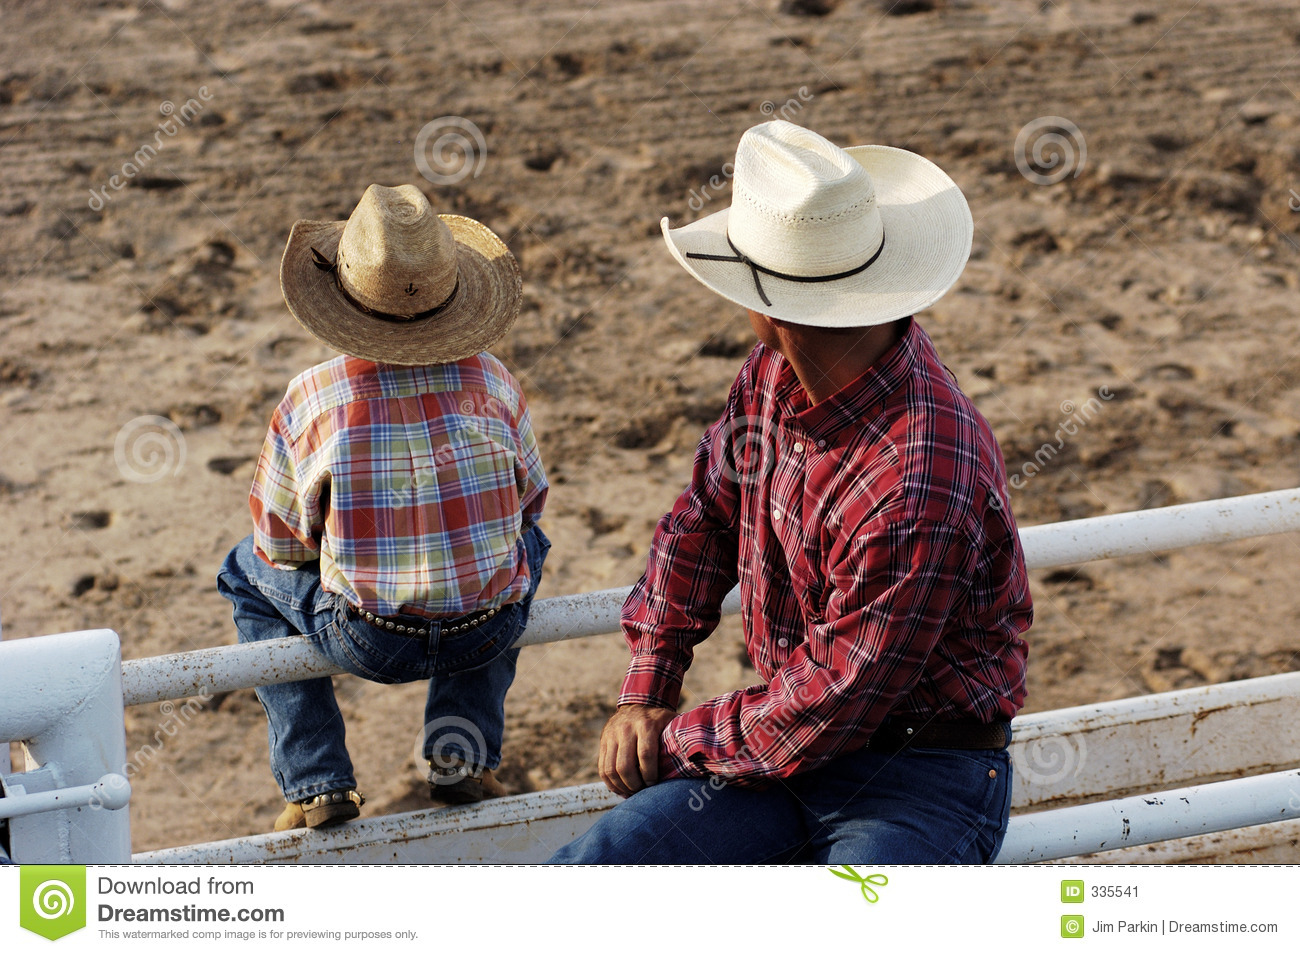 Cowboys, young and old